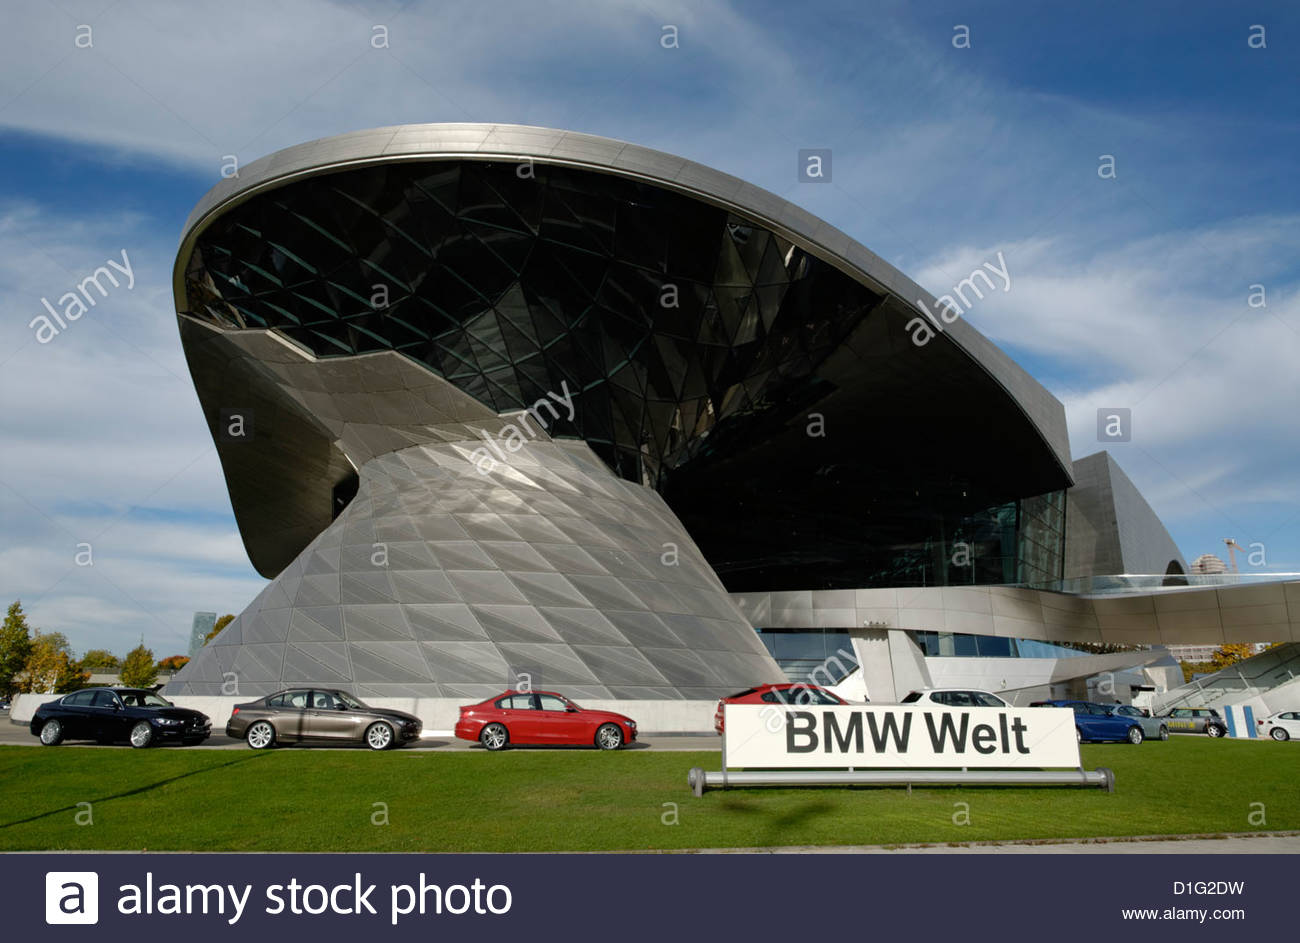 BMW Welt in München ; Germany - Stock Image